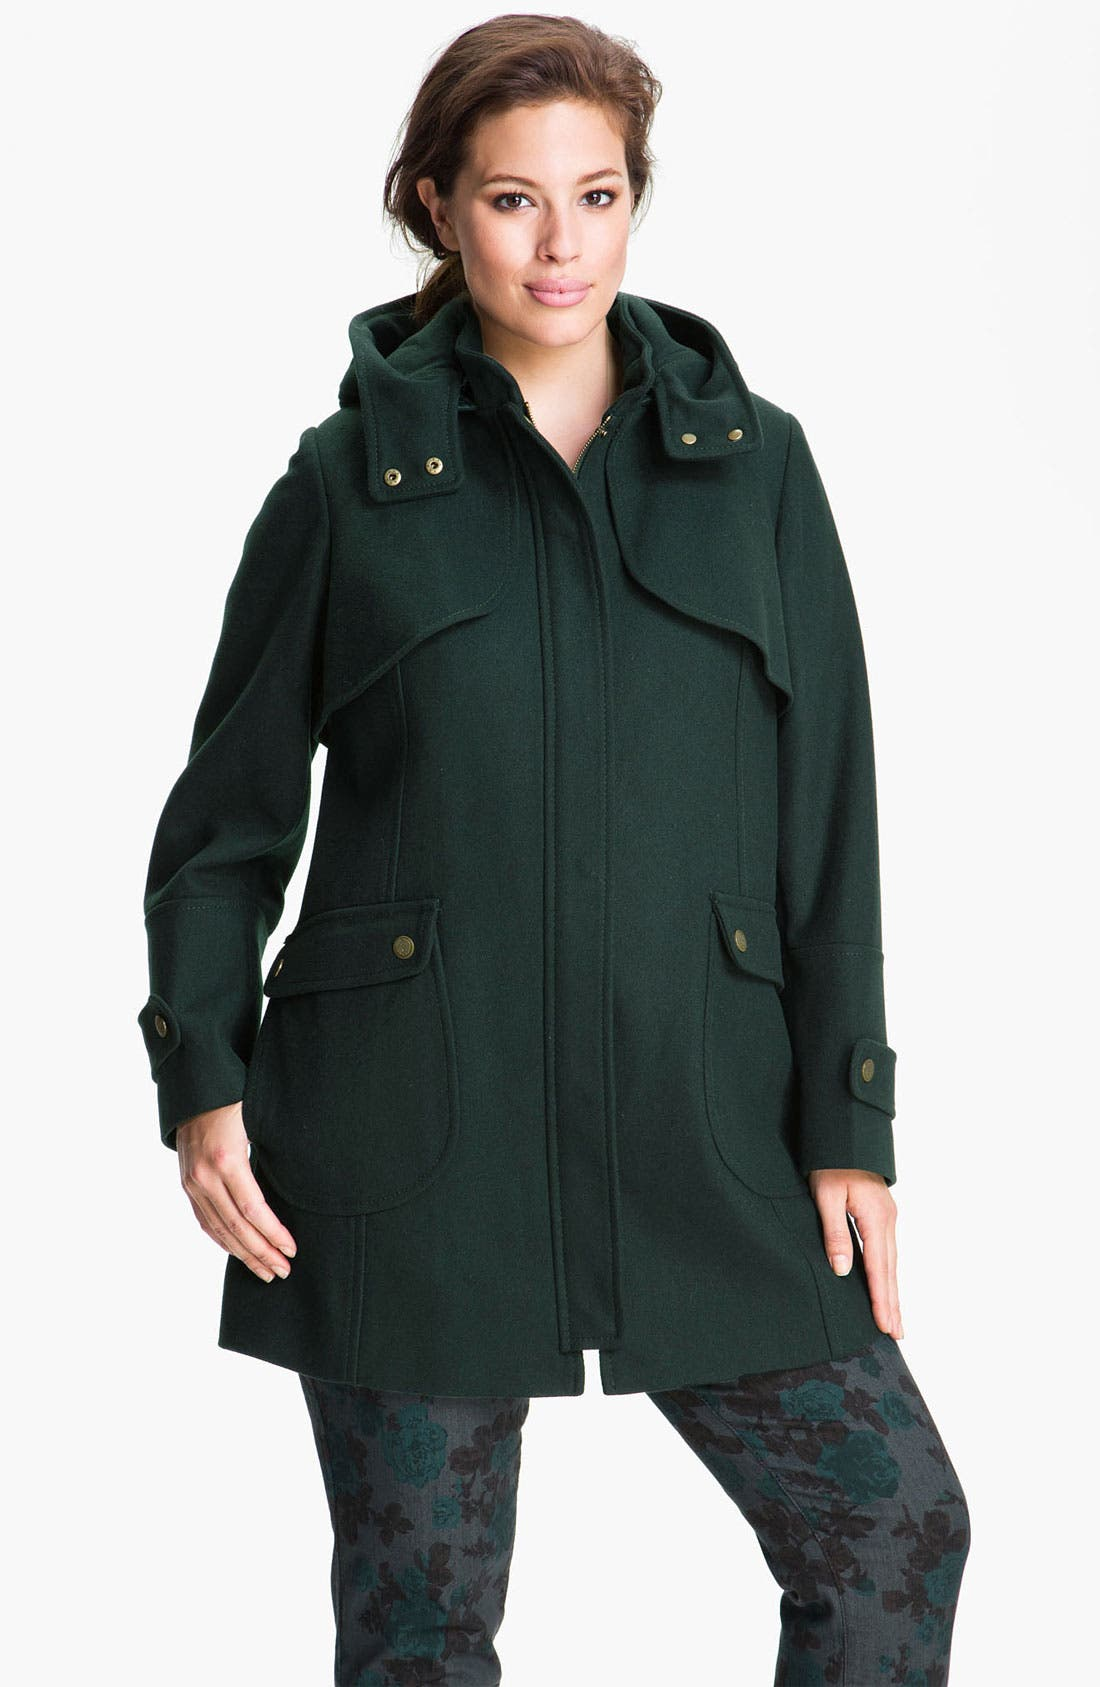 Alternate Image 1 Selected - Vince Camuto Wool Blend Jacket with Detachable Hood (Plus)